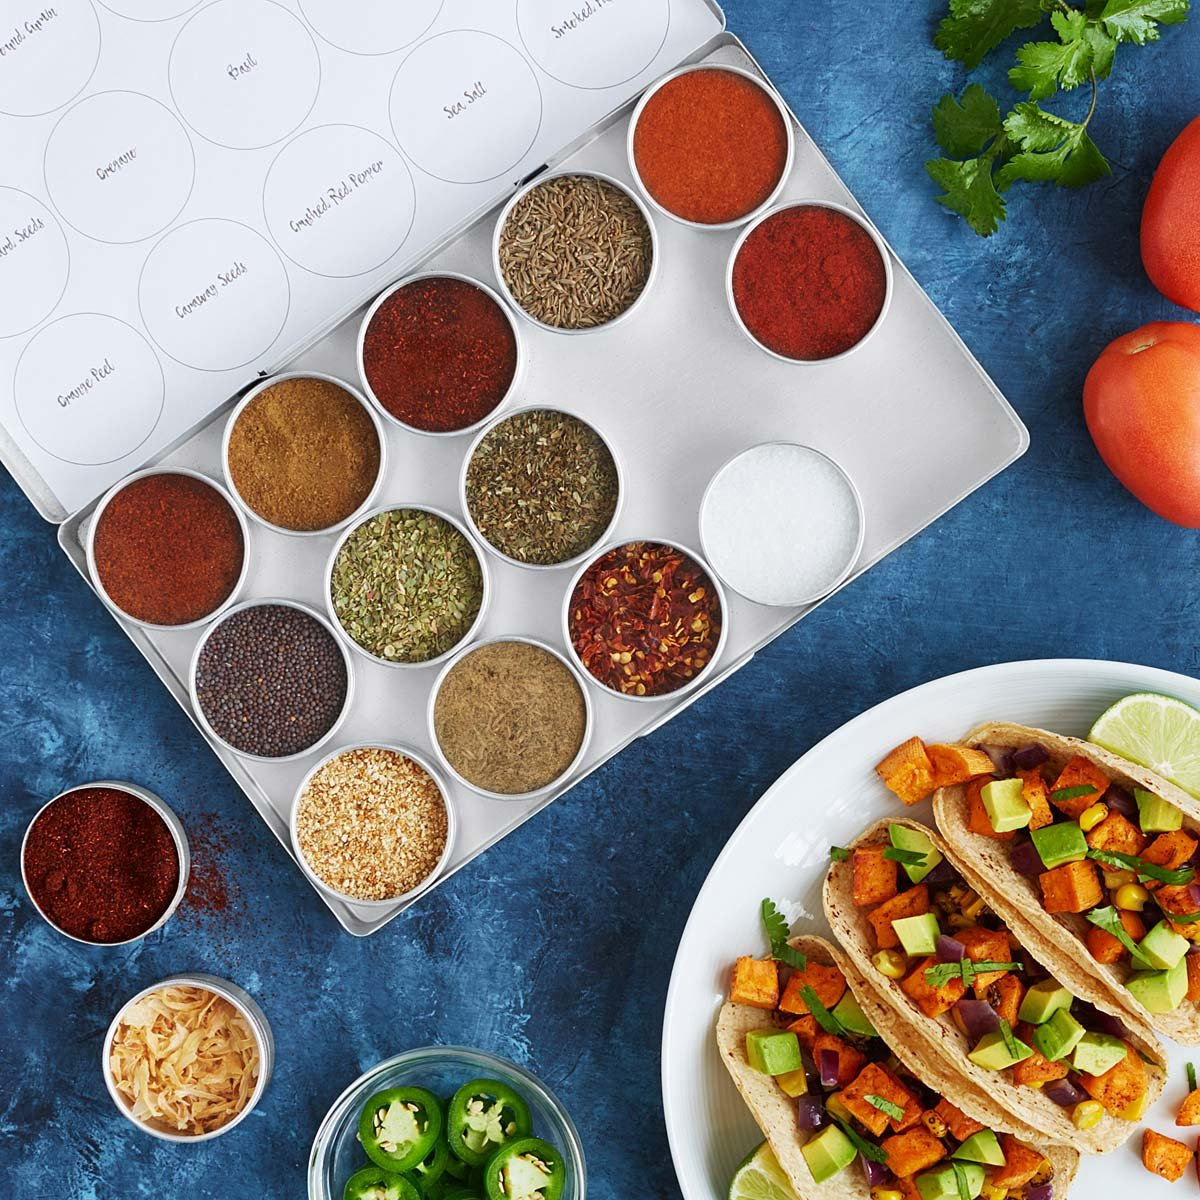 Because Taco Tuesday is a real thing - duh.  Opt for this Global Taco Seasoning Kit. 15 tins contain all the seasonings he'll need, plus recipes, for five knockout tacos from around the world. $38.00 (Image: Uncommongoods)